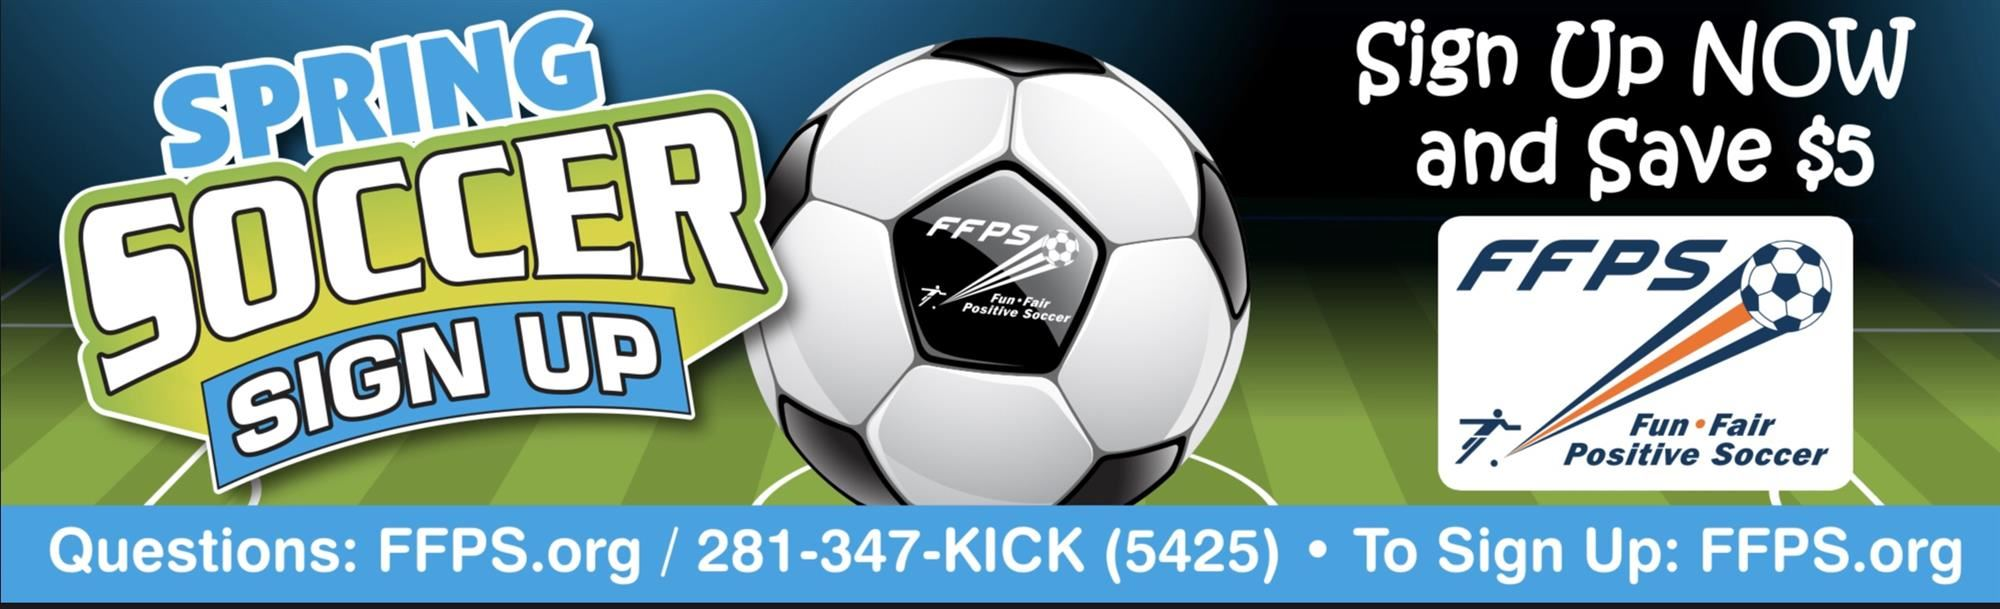 Paid Ad: FFPS Soccer